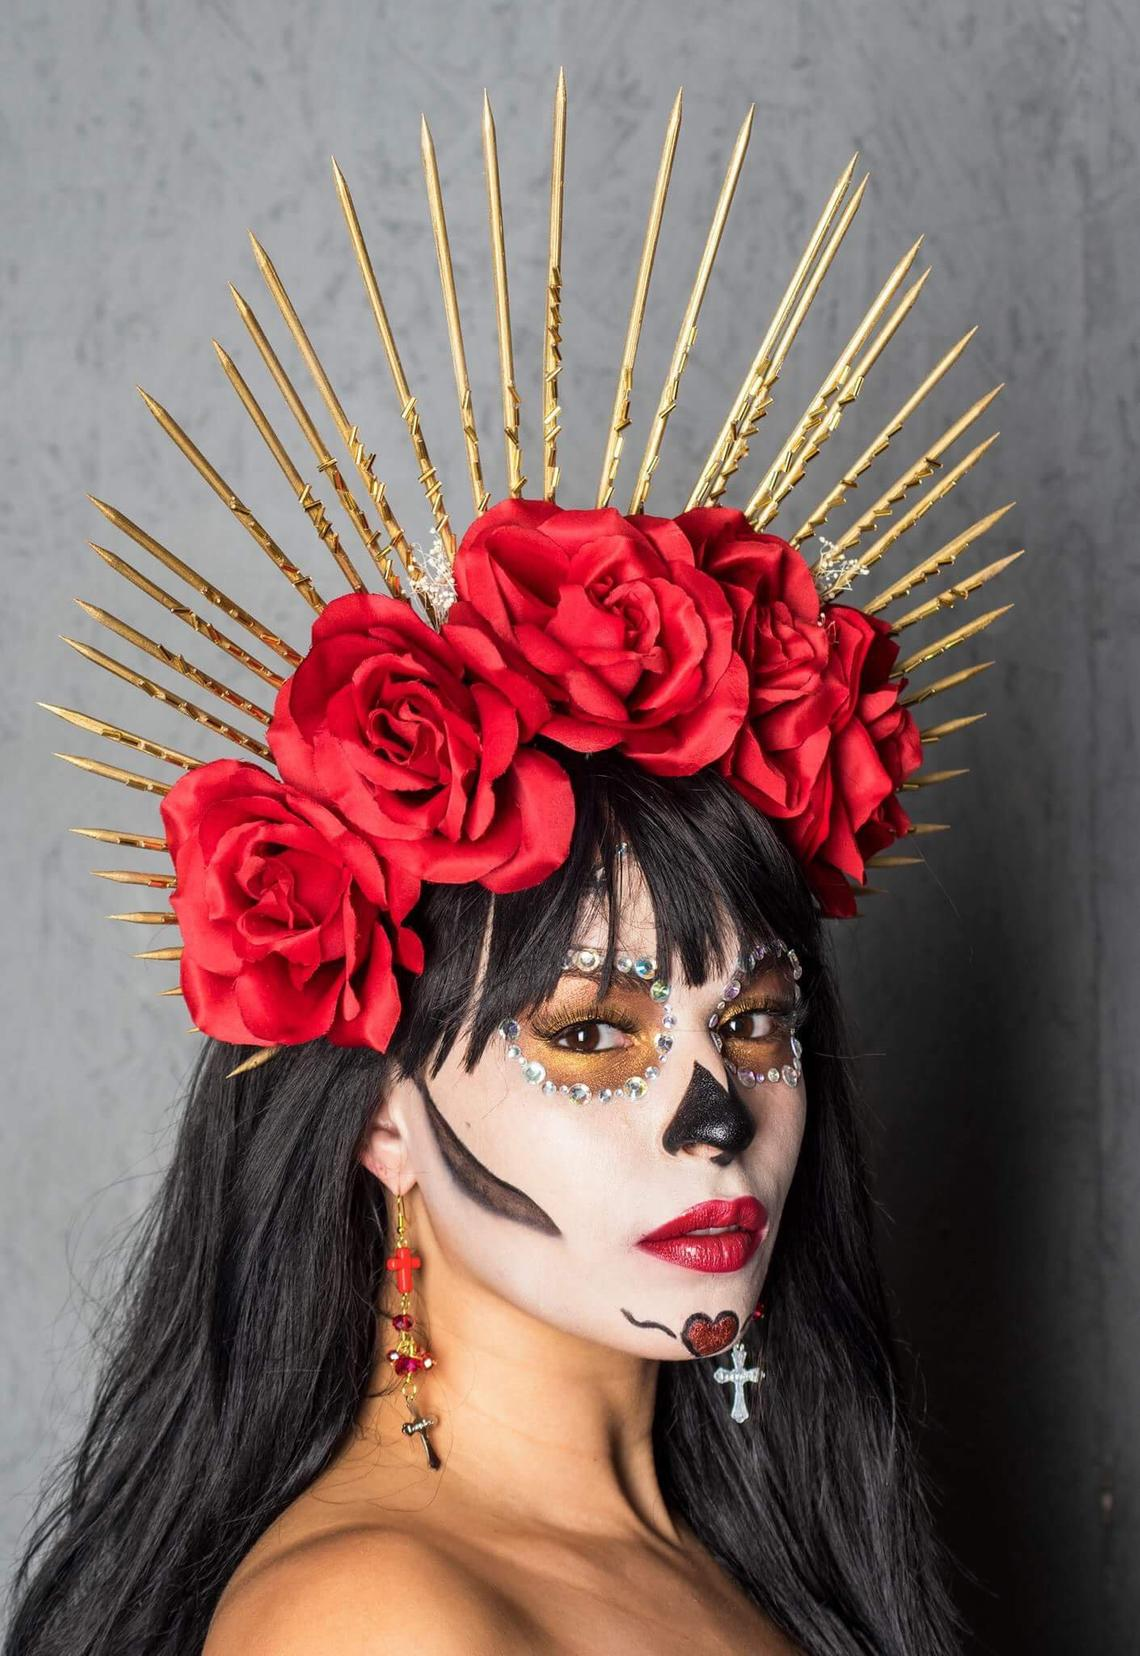 Virgin Mary Día de los Muertos Crown Headpiece By HeadpieceHeiress